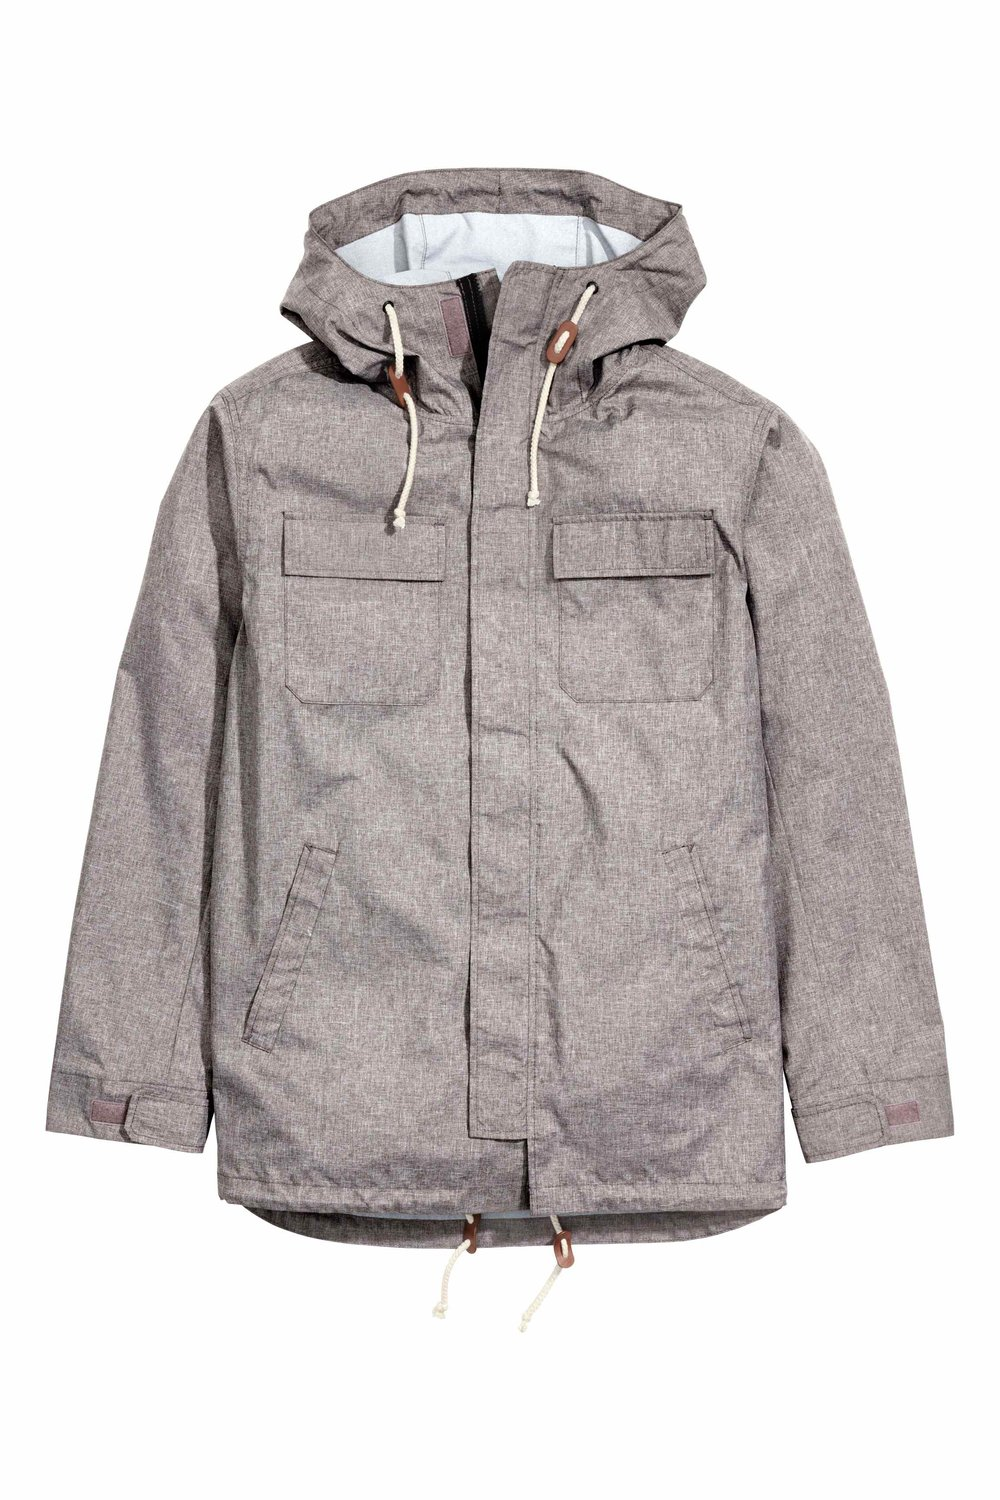 Parka with a hood, £29.99 ( hm.com )